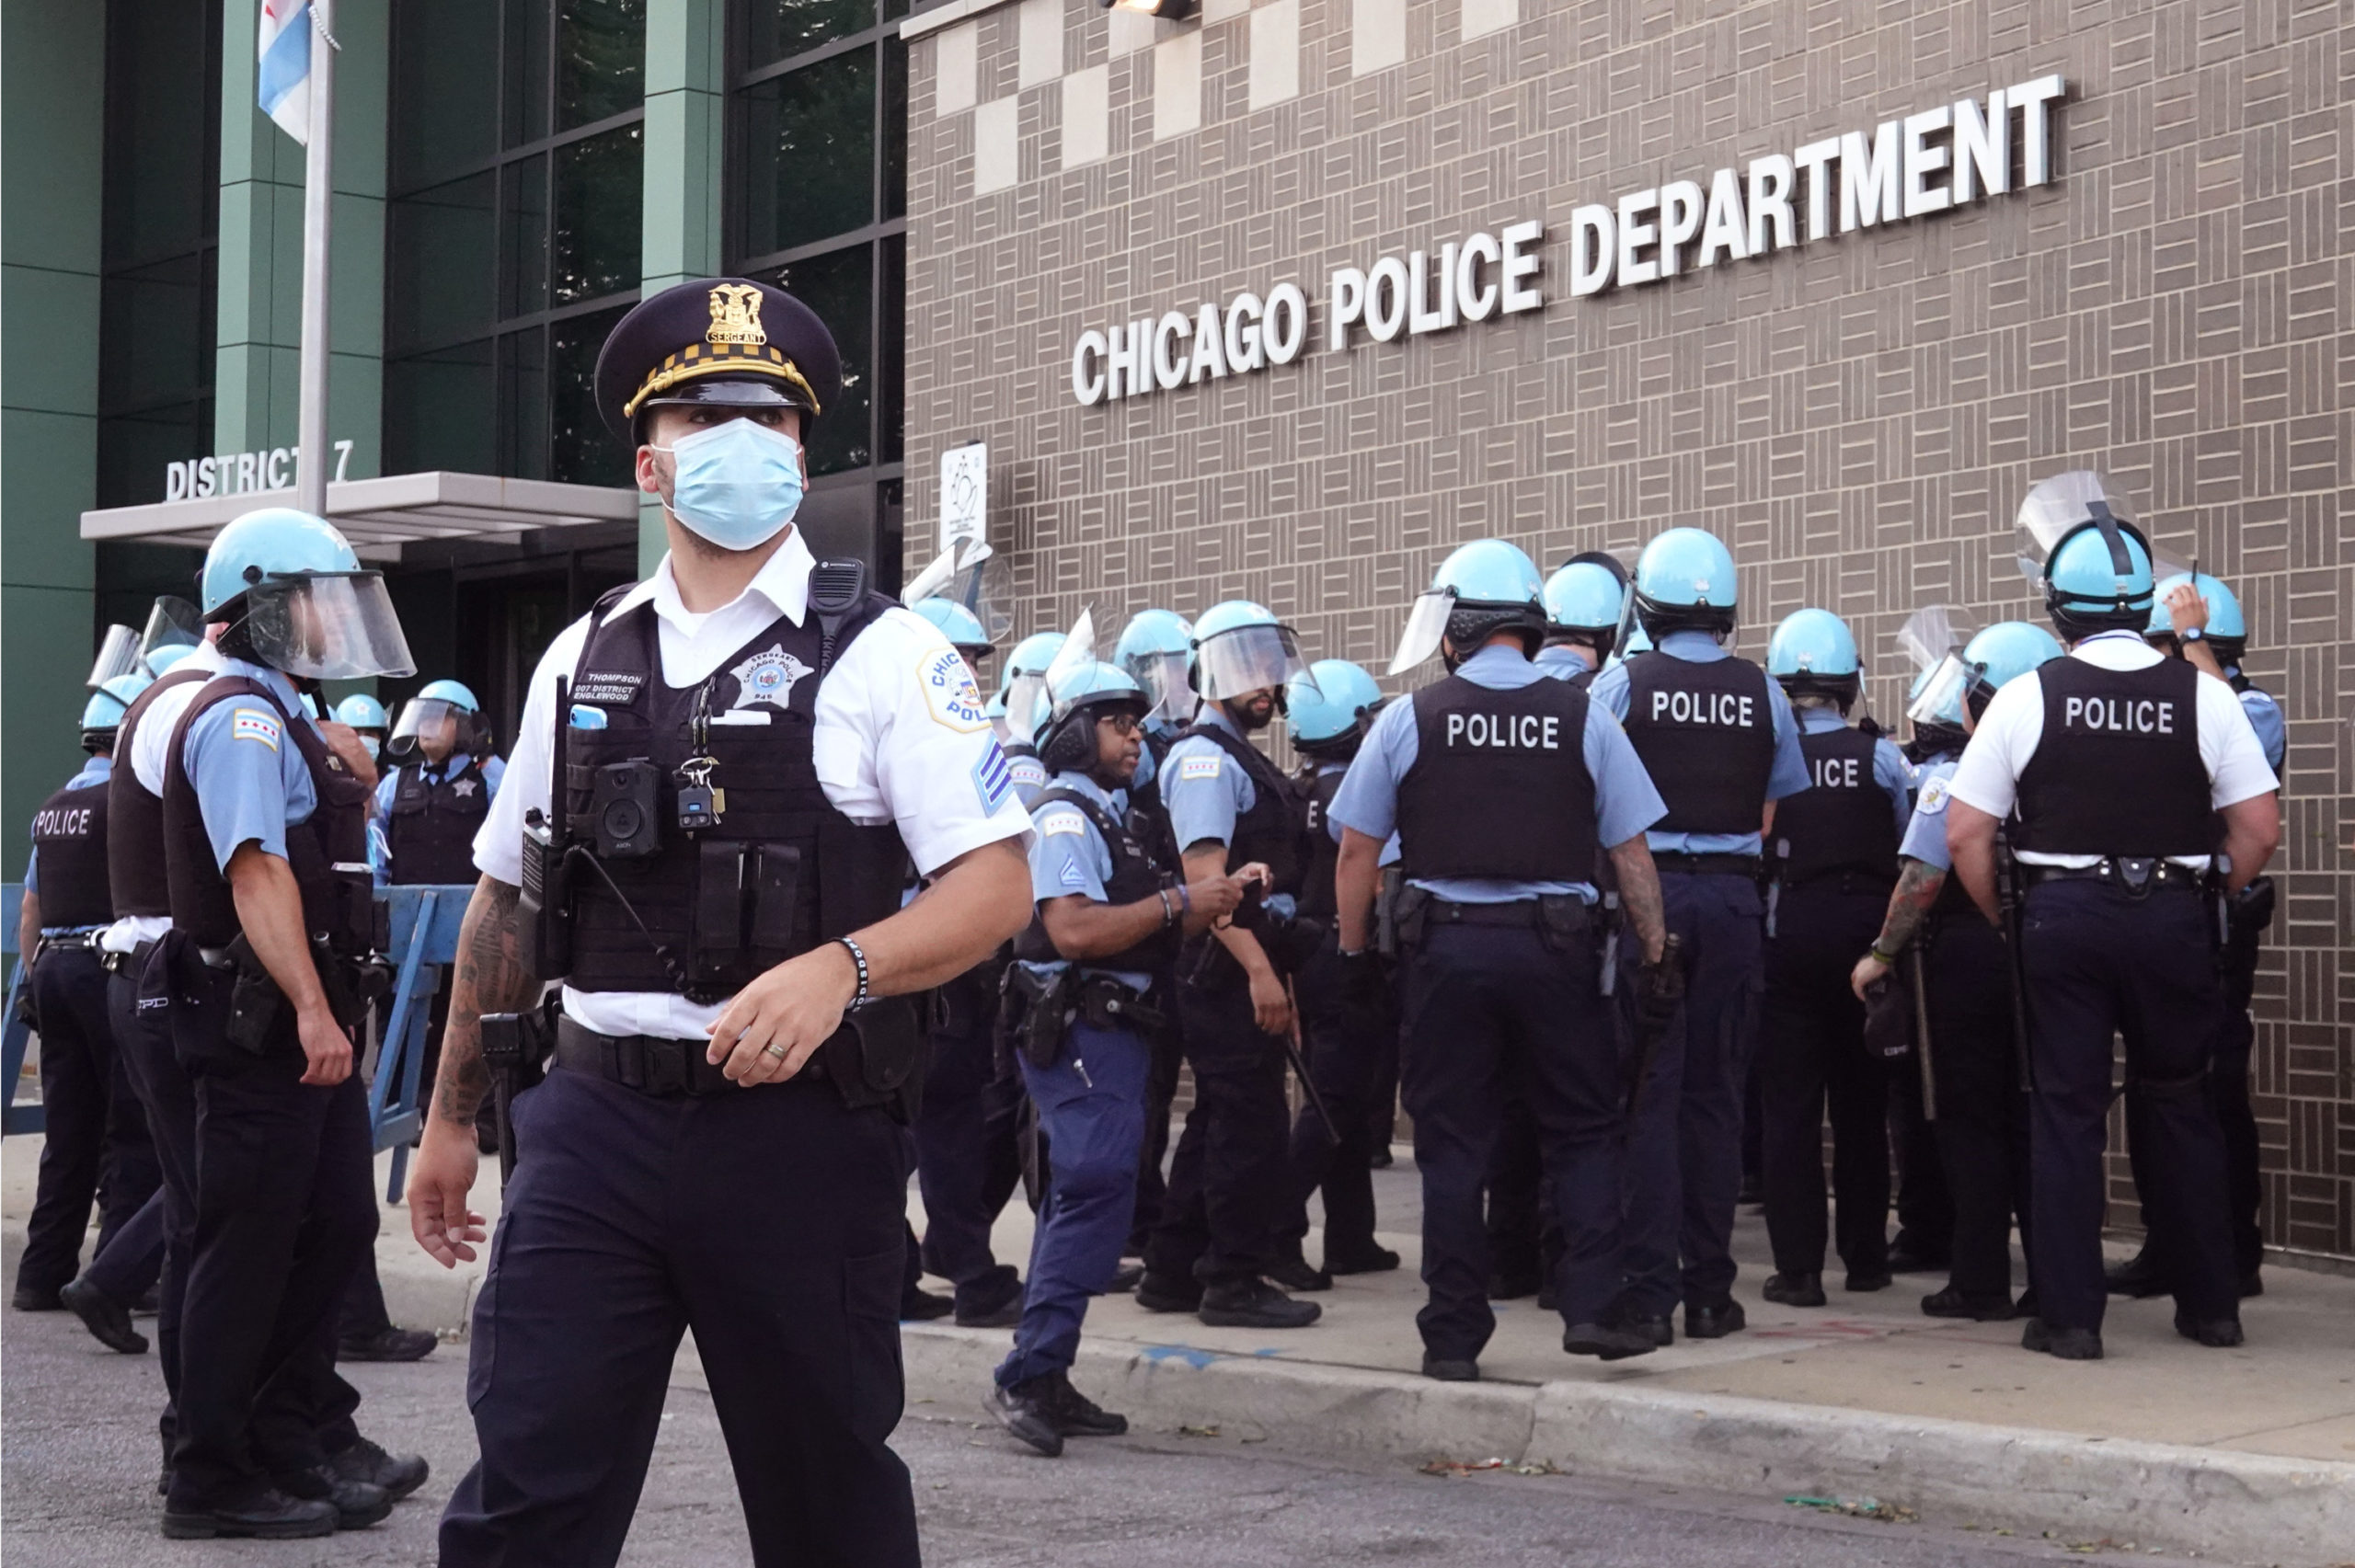 CHICAGO, ILLINOIS - AUGUST 11: Chicago police stand guard as demonstrators protest outside the department's 7th District station on August 11, 2020 in Chicago, Illinois. The protest was held in response to the August 9 shooting and wounding of a 20-year-old man who allegedly fired at officers in the Englewood neighborhood. The protest was met with resistance from a small group of Englewood residents. (Scott Olson/Getty Images)